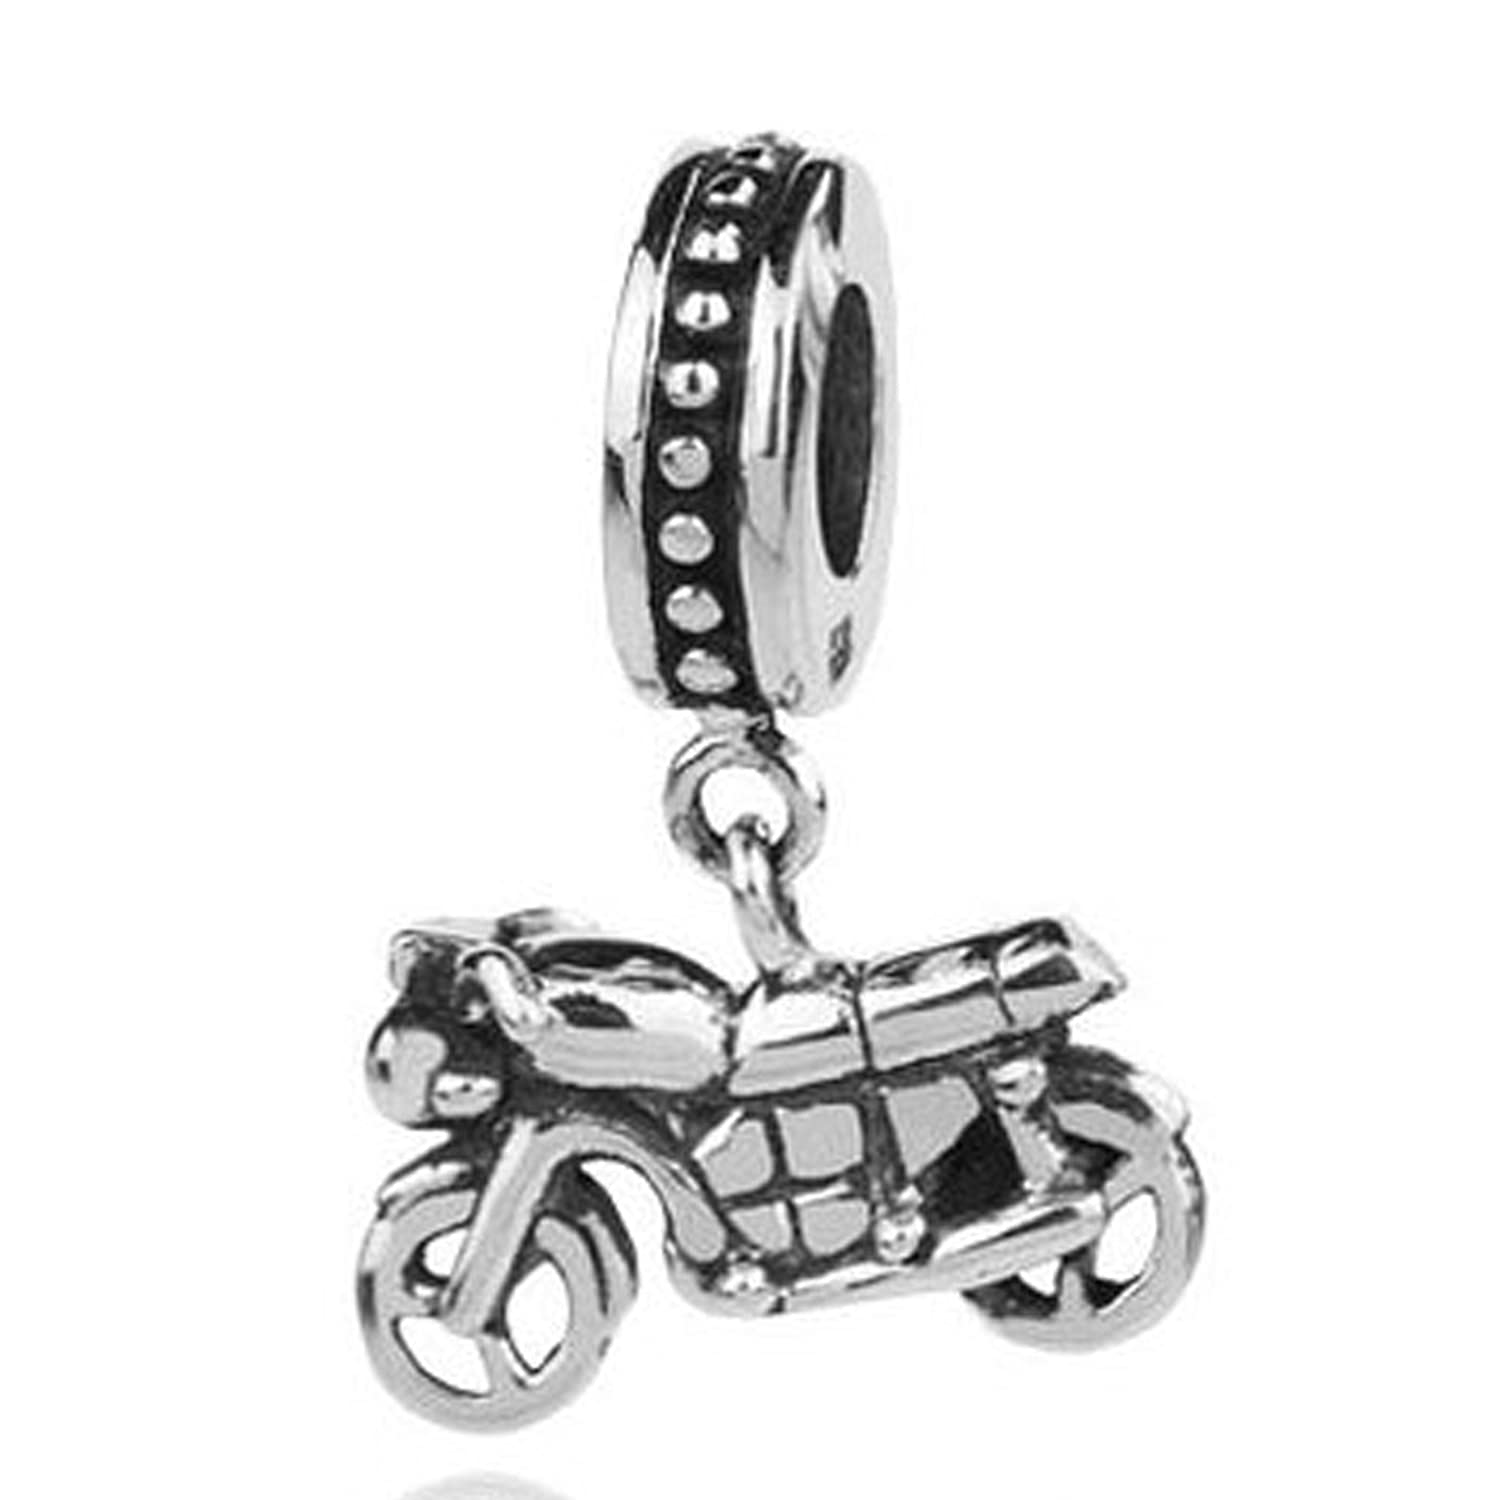 charm and pandora silver sterling product bracelet heart jewelry store necklace style silve my authentic european diy fit bear